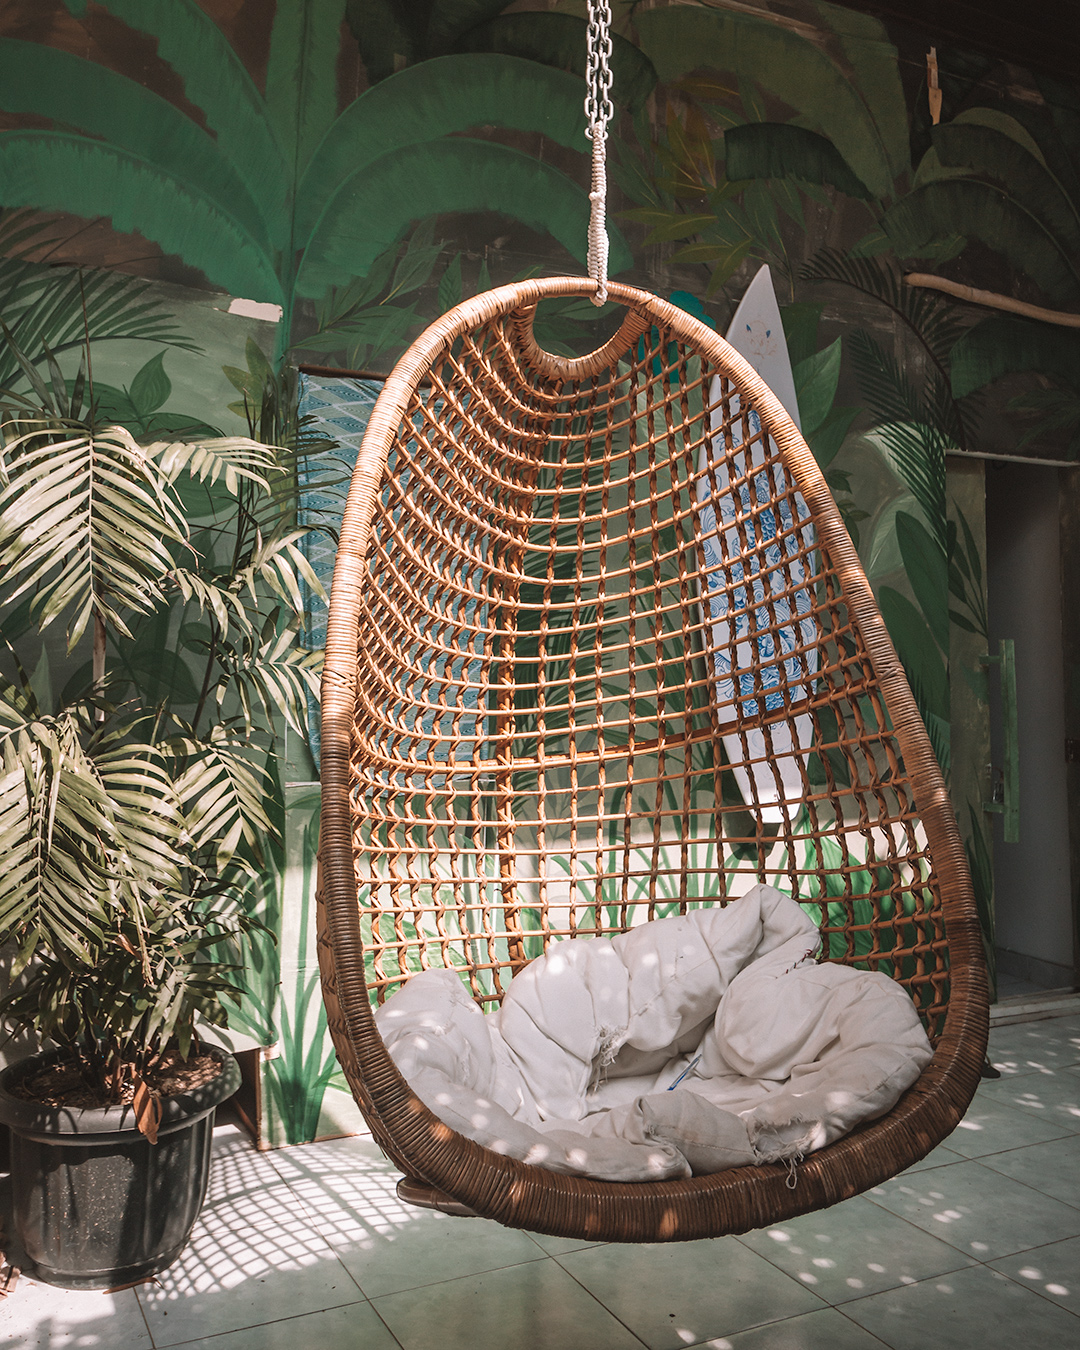 The best coworking space in Bali surfing nomads digital remote work community chill zone hammock